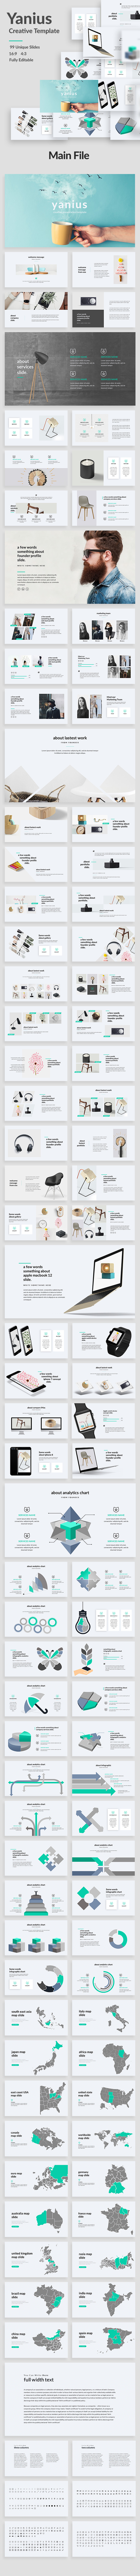 Yanius - Creative Powerpoint Template - Creative PowerPoint Templates